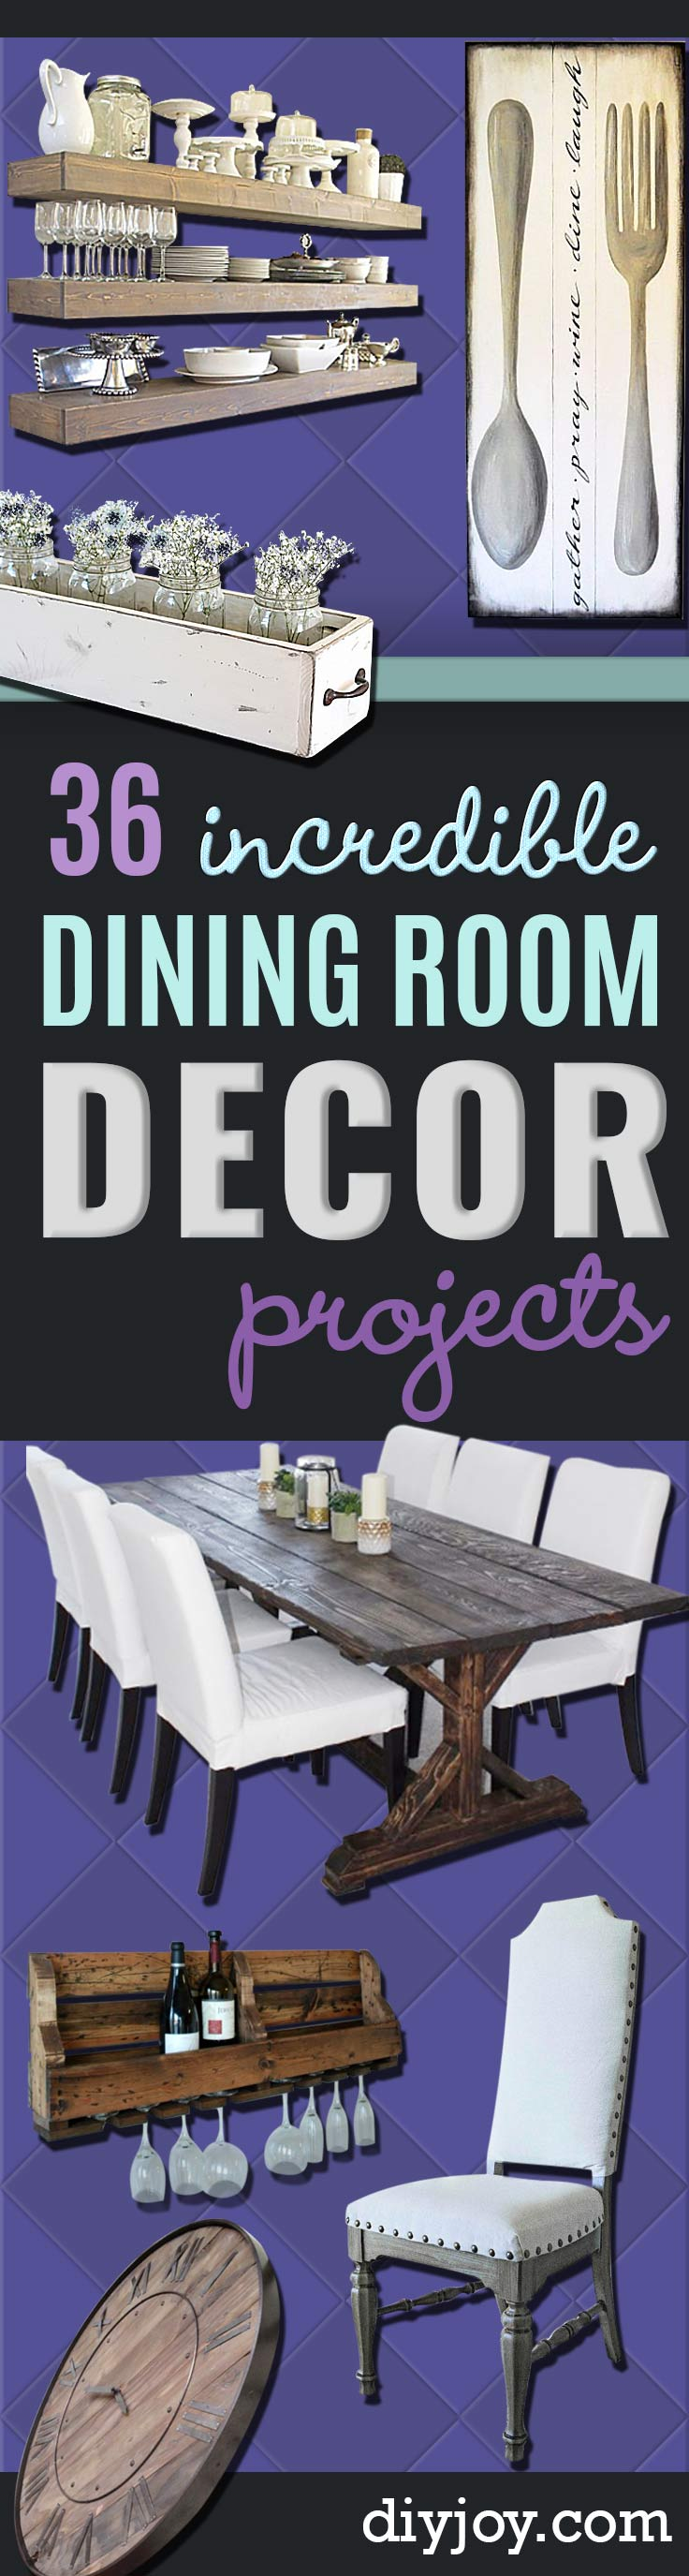 DIY Dining Room Decor Ideas - Cool DIY Projects for Table, Chairs, Decorations, Wall Art, Bench Plans, Storage, Buffet, Hutch and Lighting Tutorials http://diyjoy.com/diy-dining-room-decor-ideas